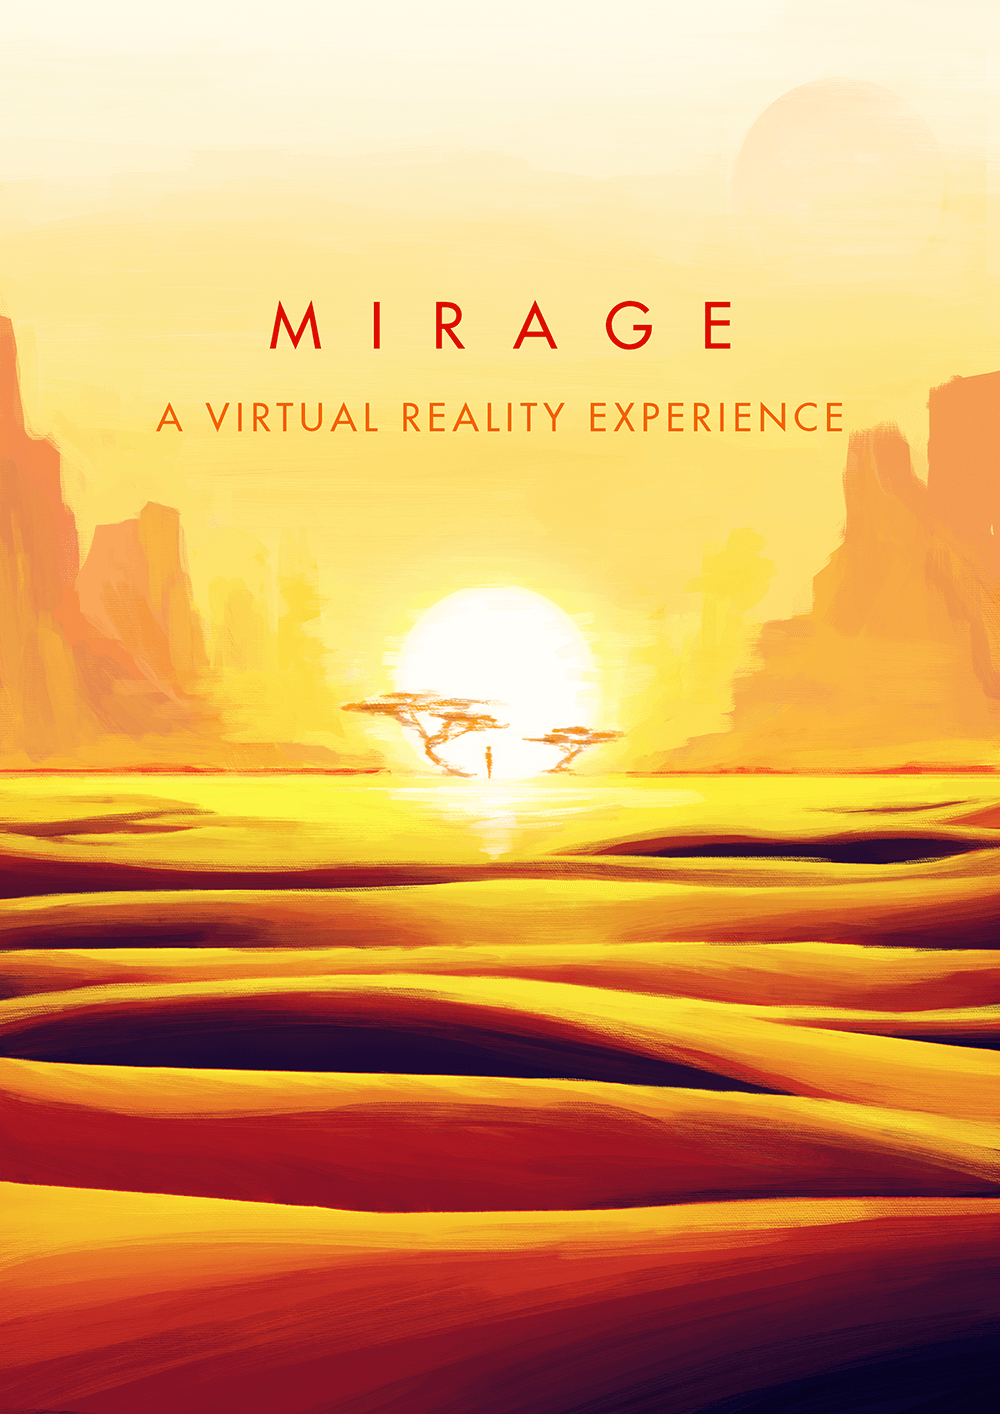 Poster for Mirage an upcoming virtual reality experience by Philipp Maas